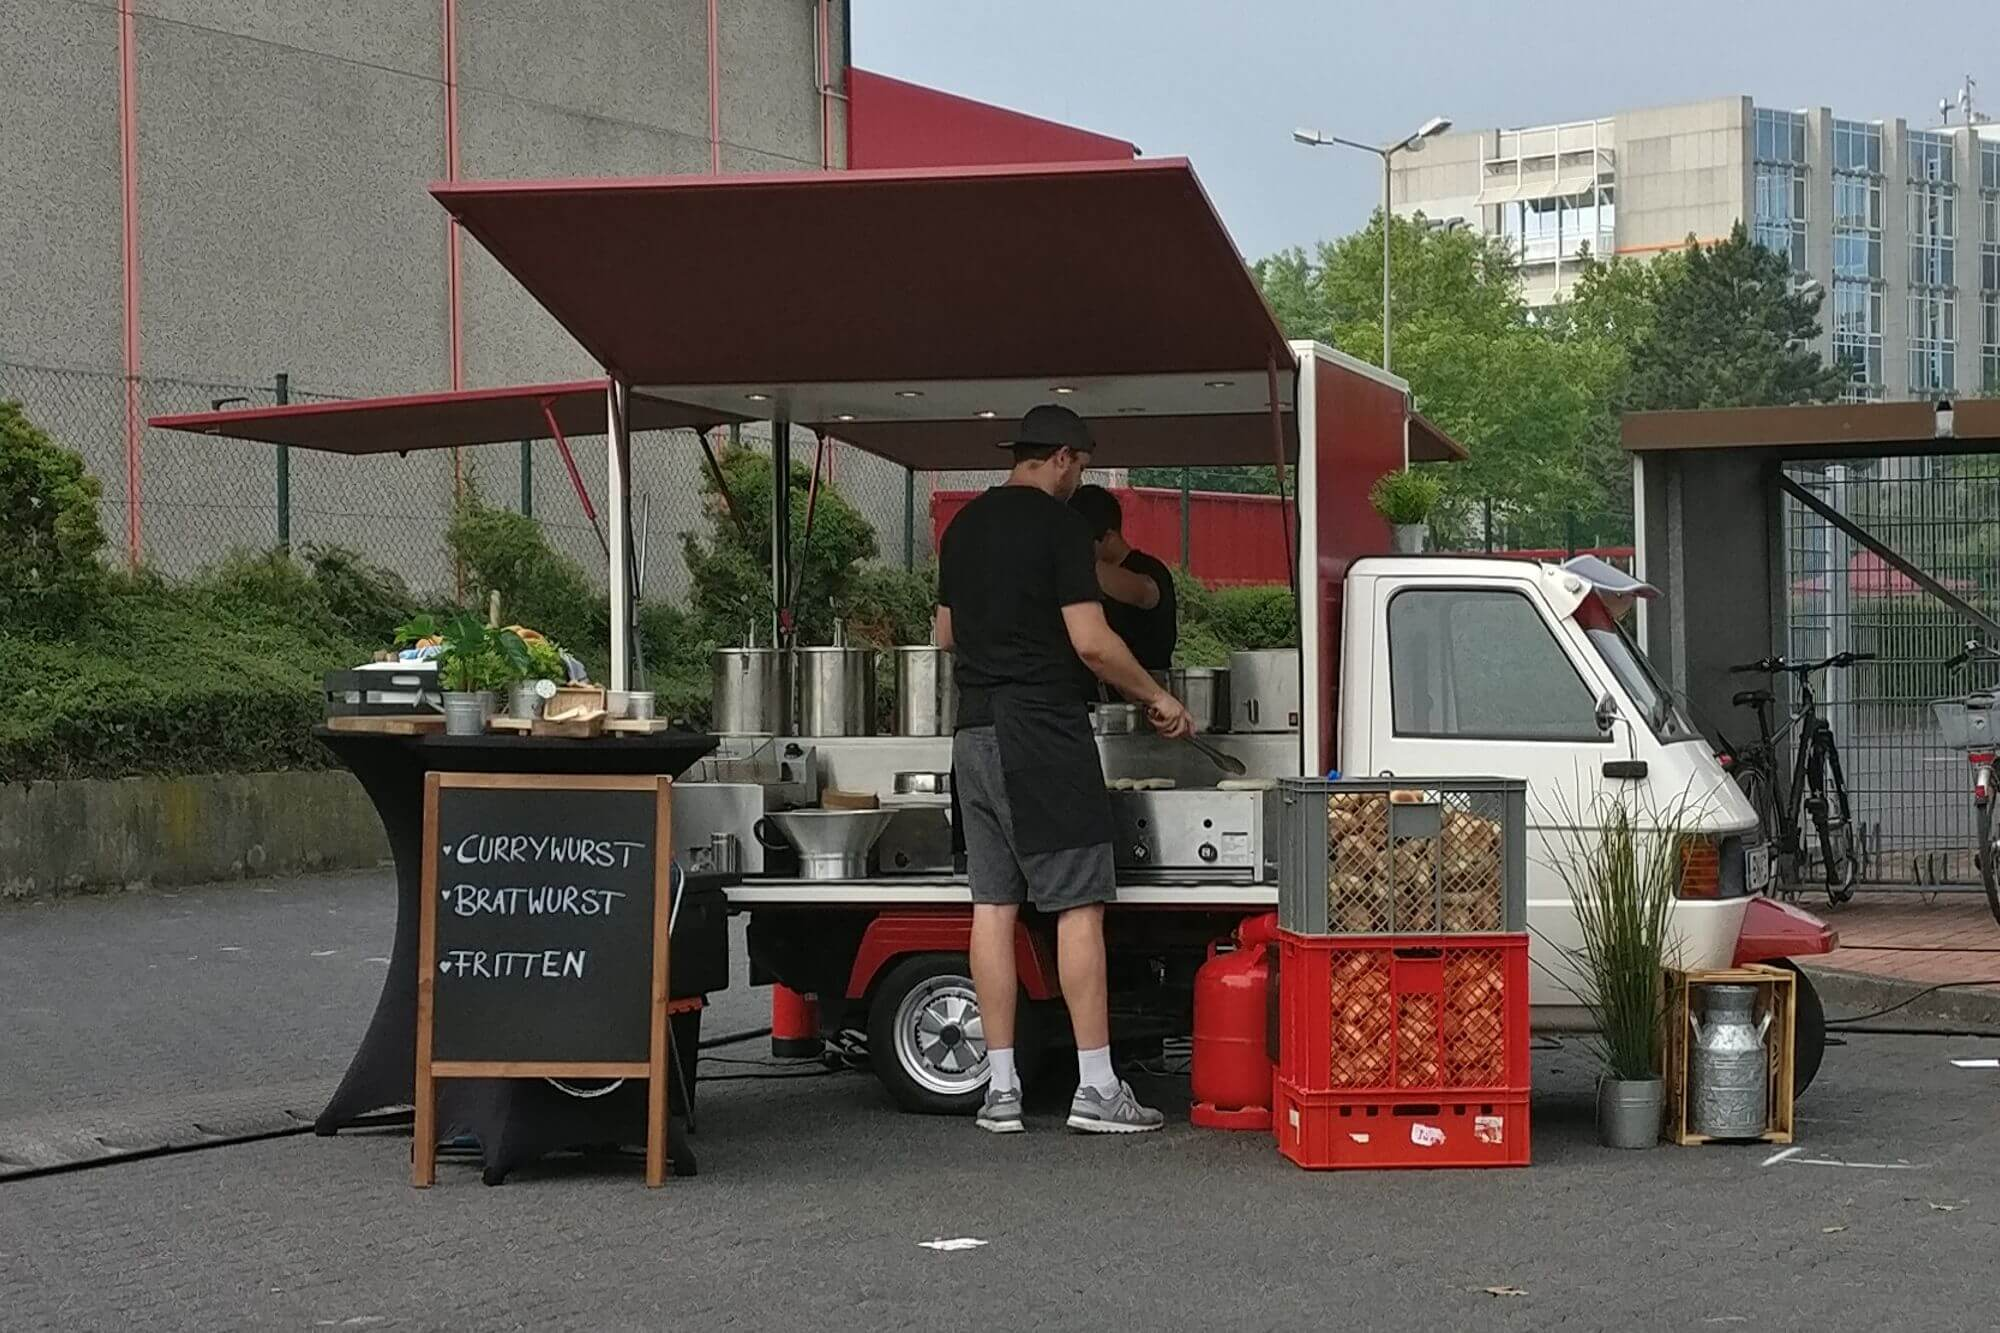 ape-burger-lieblingsburger-foodtruck-streetfood-b2b-catering-12